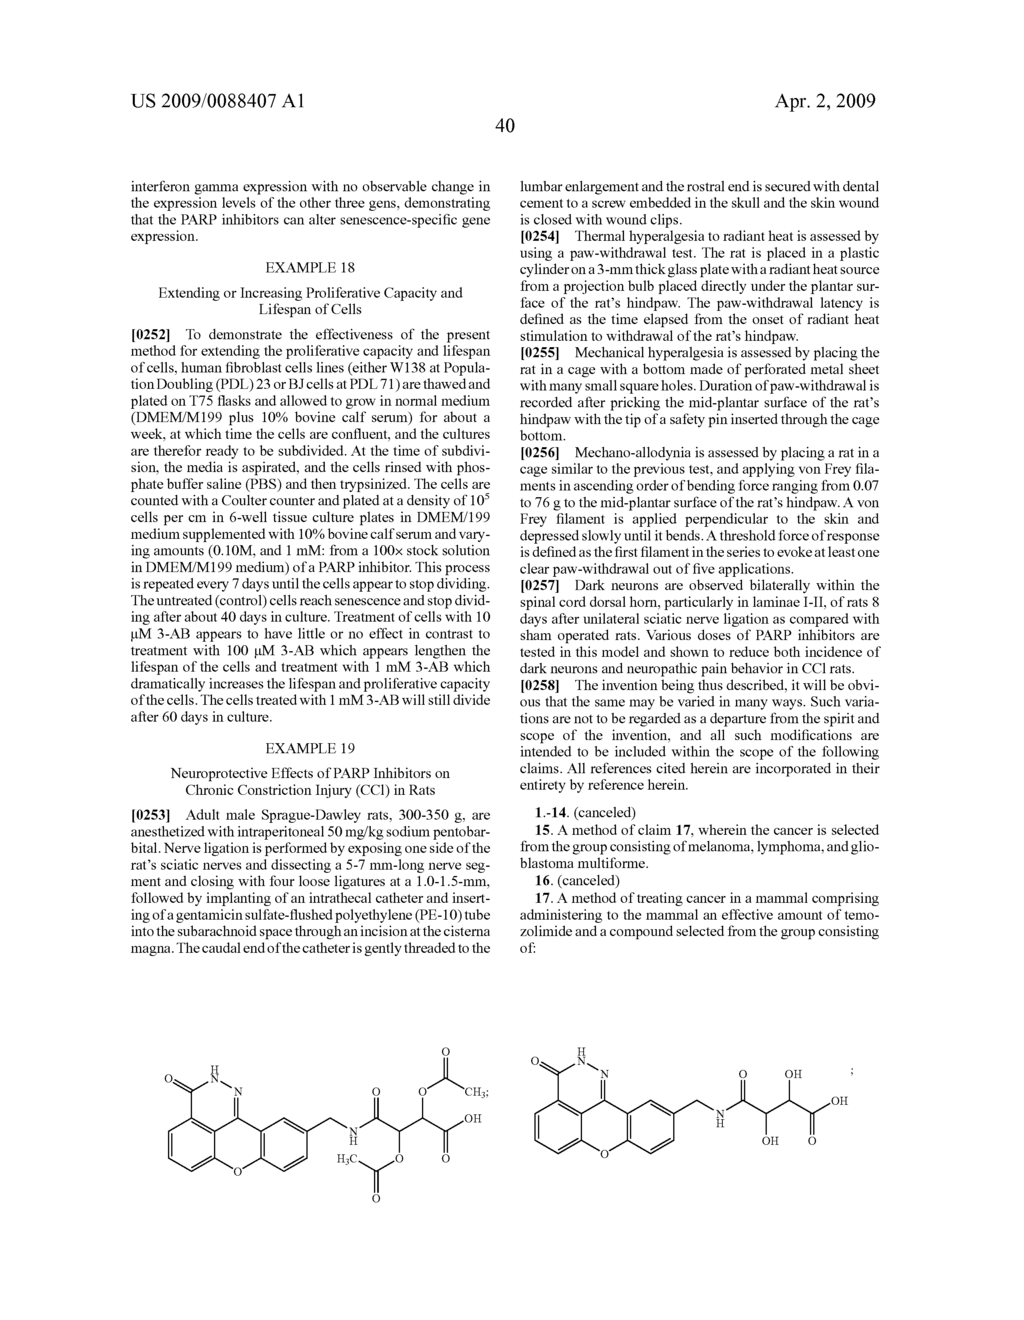 COMPOUNDS, METHODS AND PHARMACEUTICAL COMPOSITIONS FOR INHIBITING PARP - diagram, schematic, and image 42